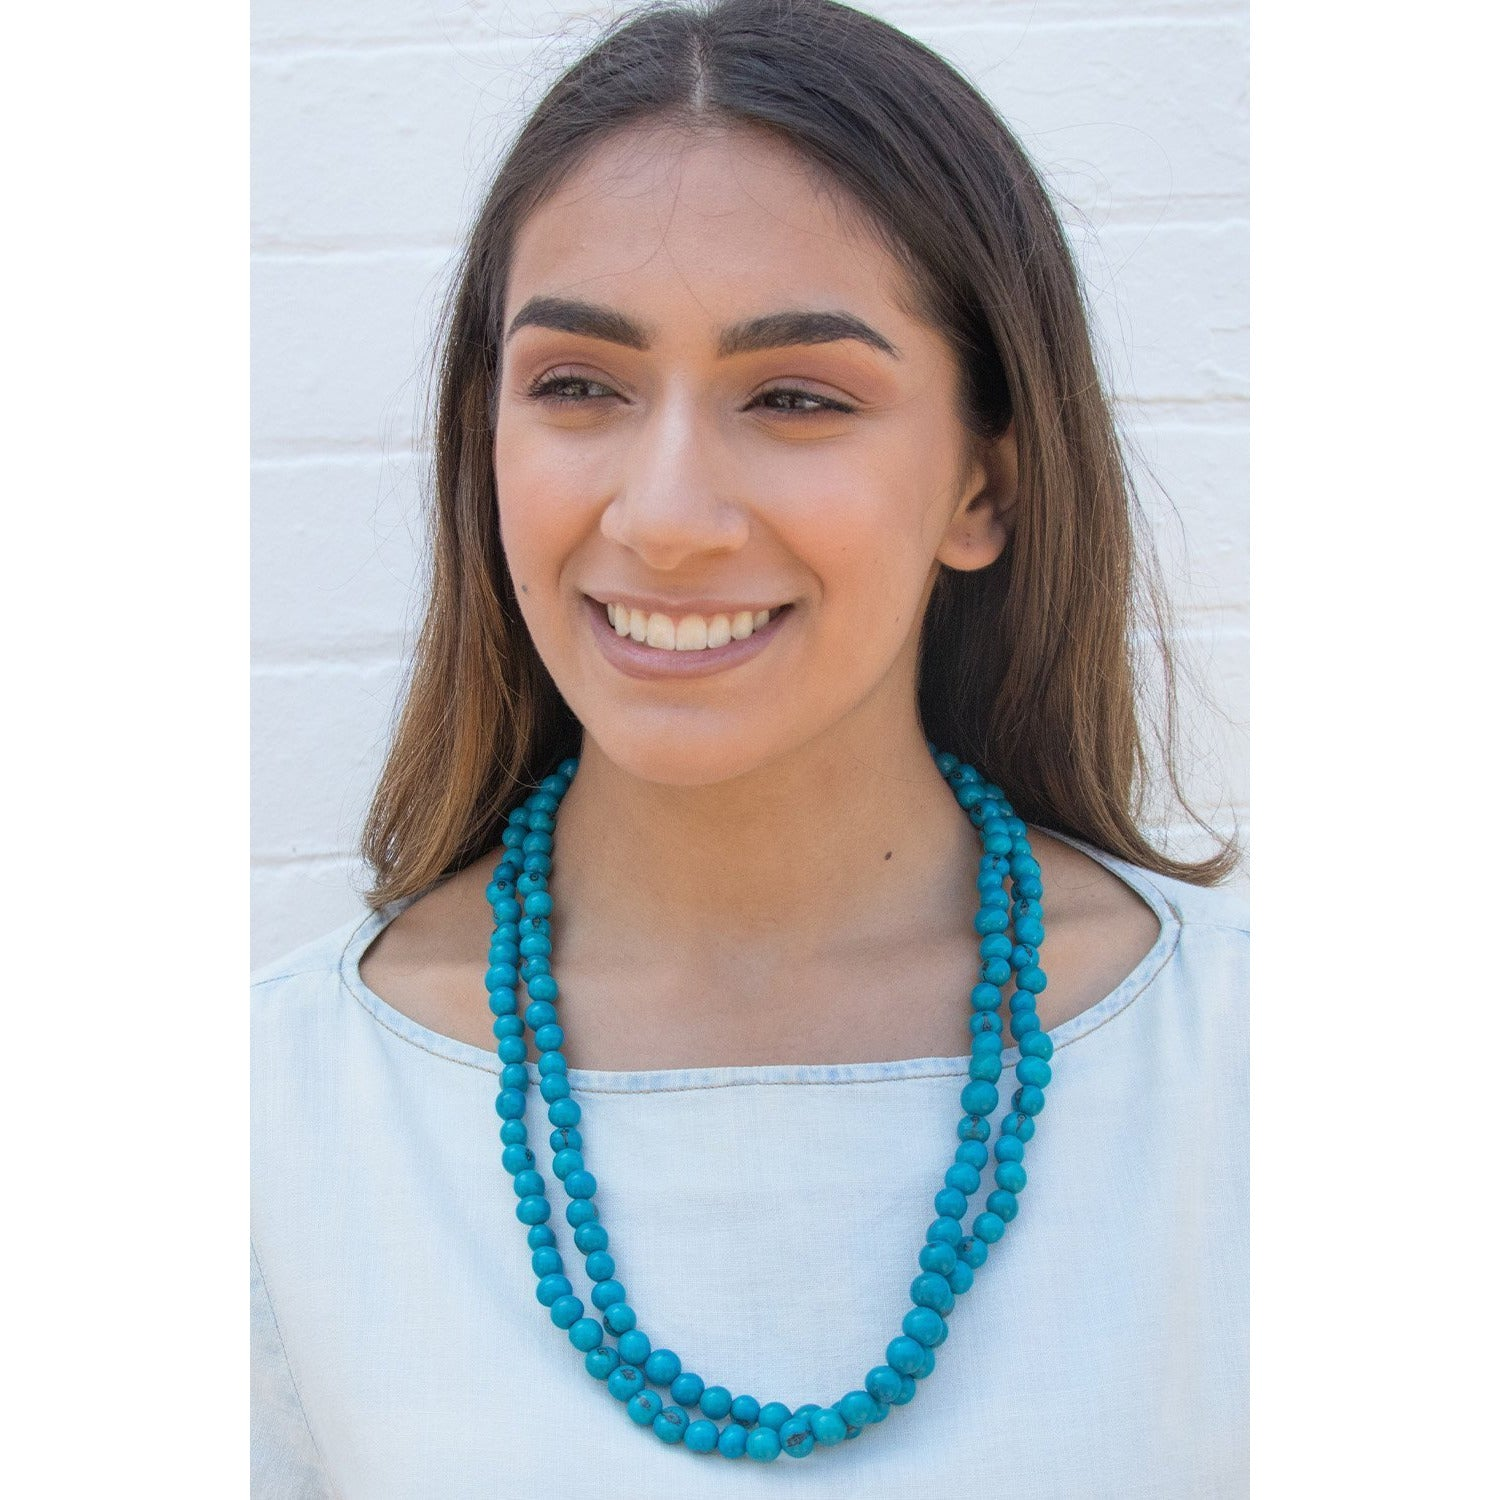 Acai Bead Necklaces by Melko in Light Turquoise